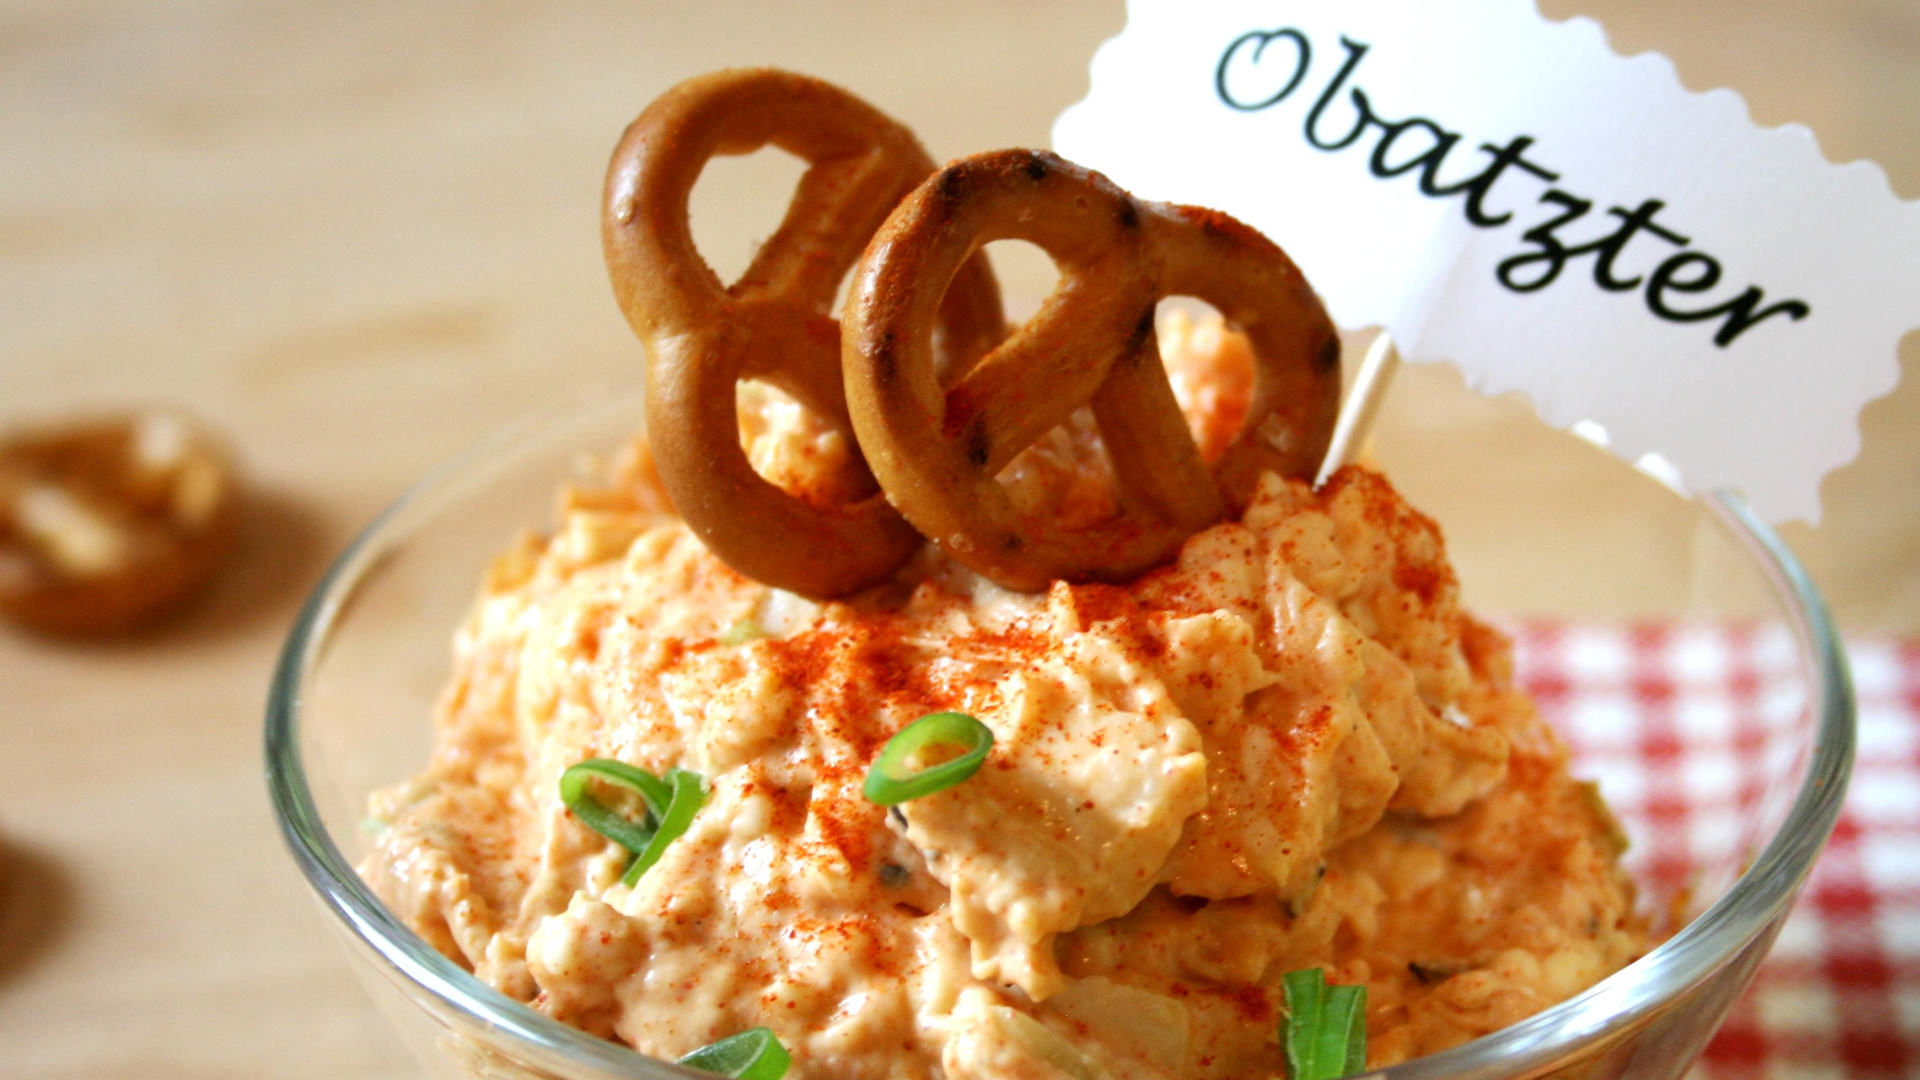 obatzda bavarian cheese